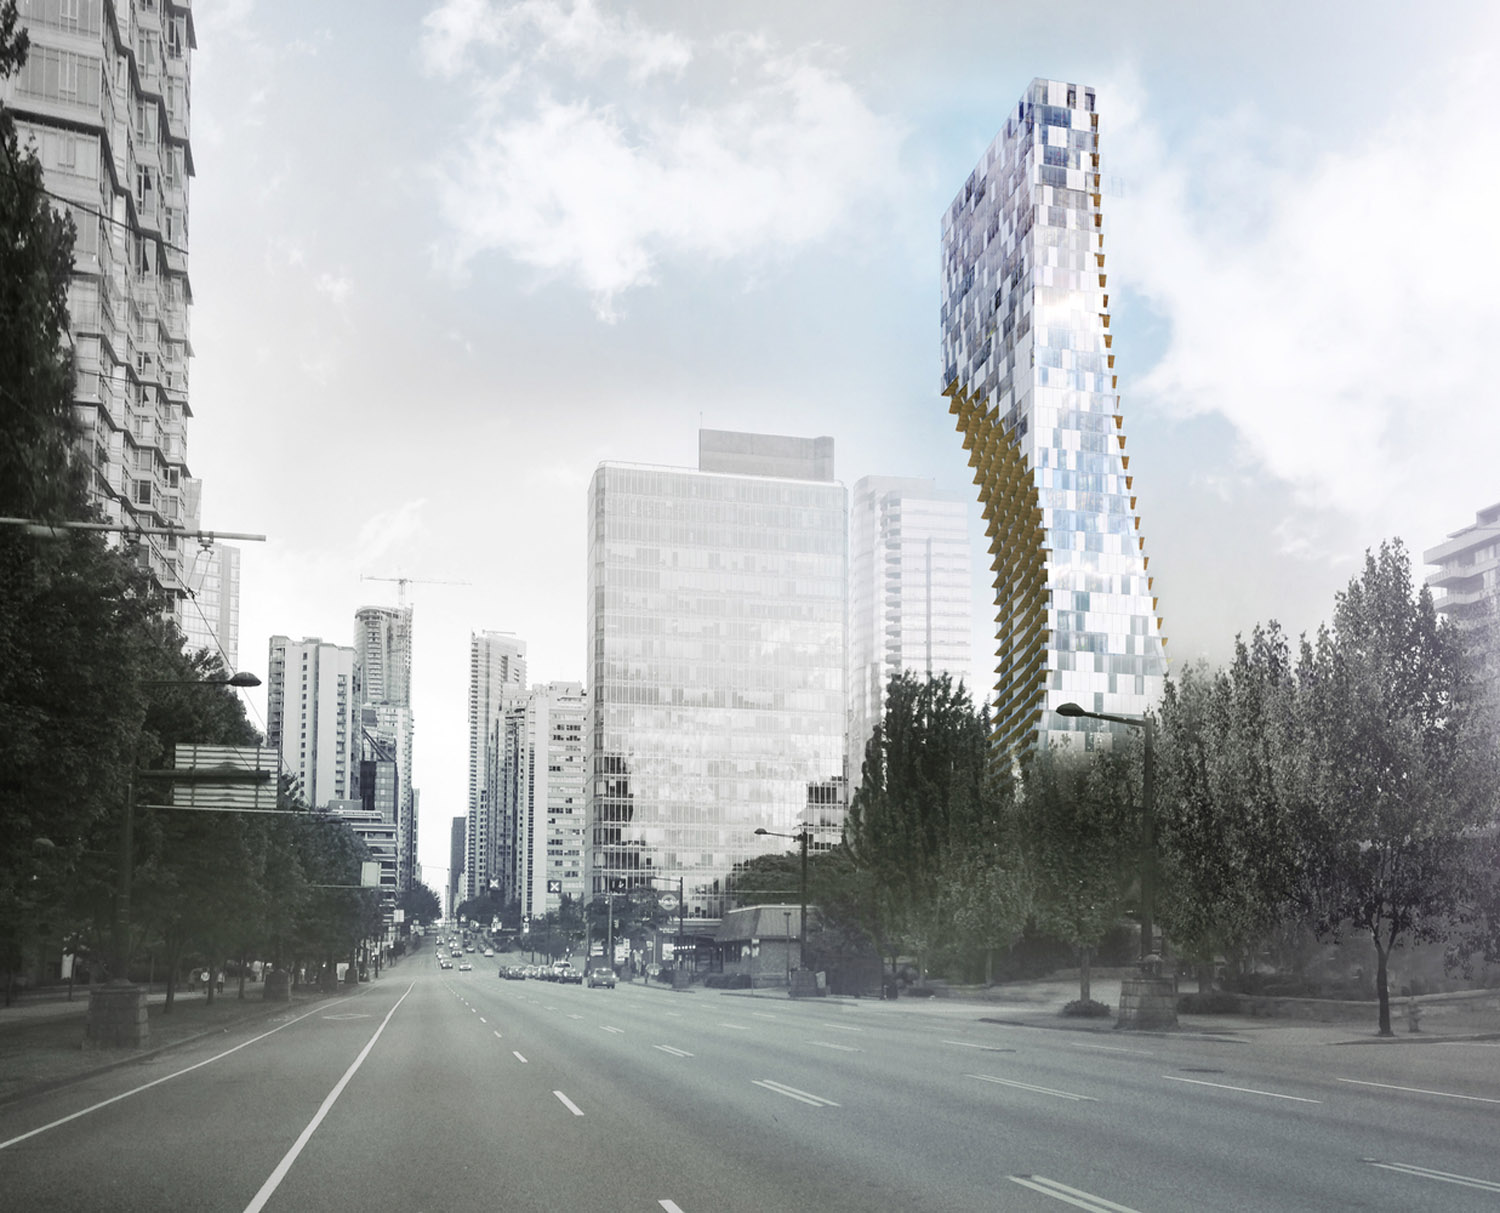 mm_Mixed-Use Skyscraper in Vancouver design by Kengo Kuma_01